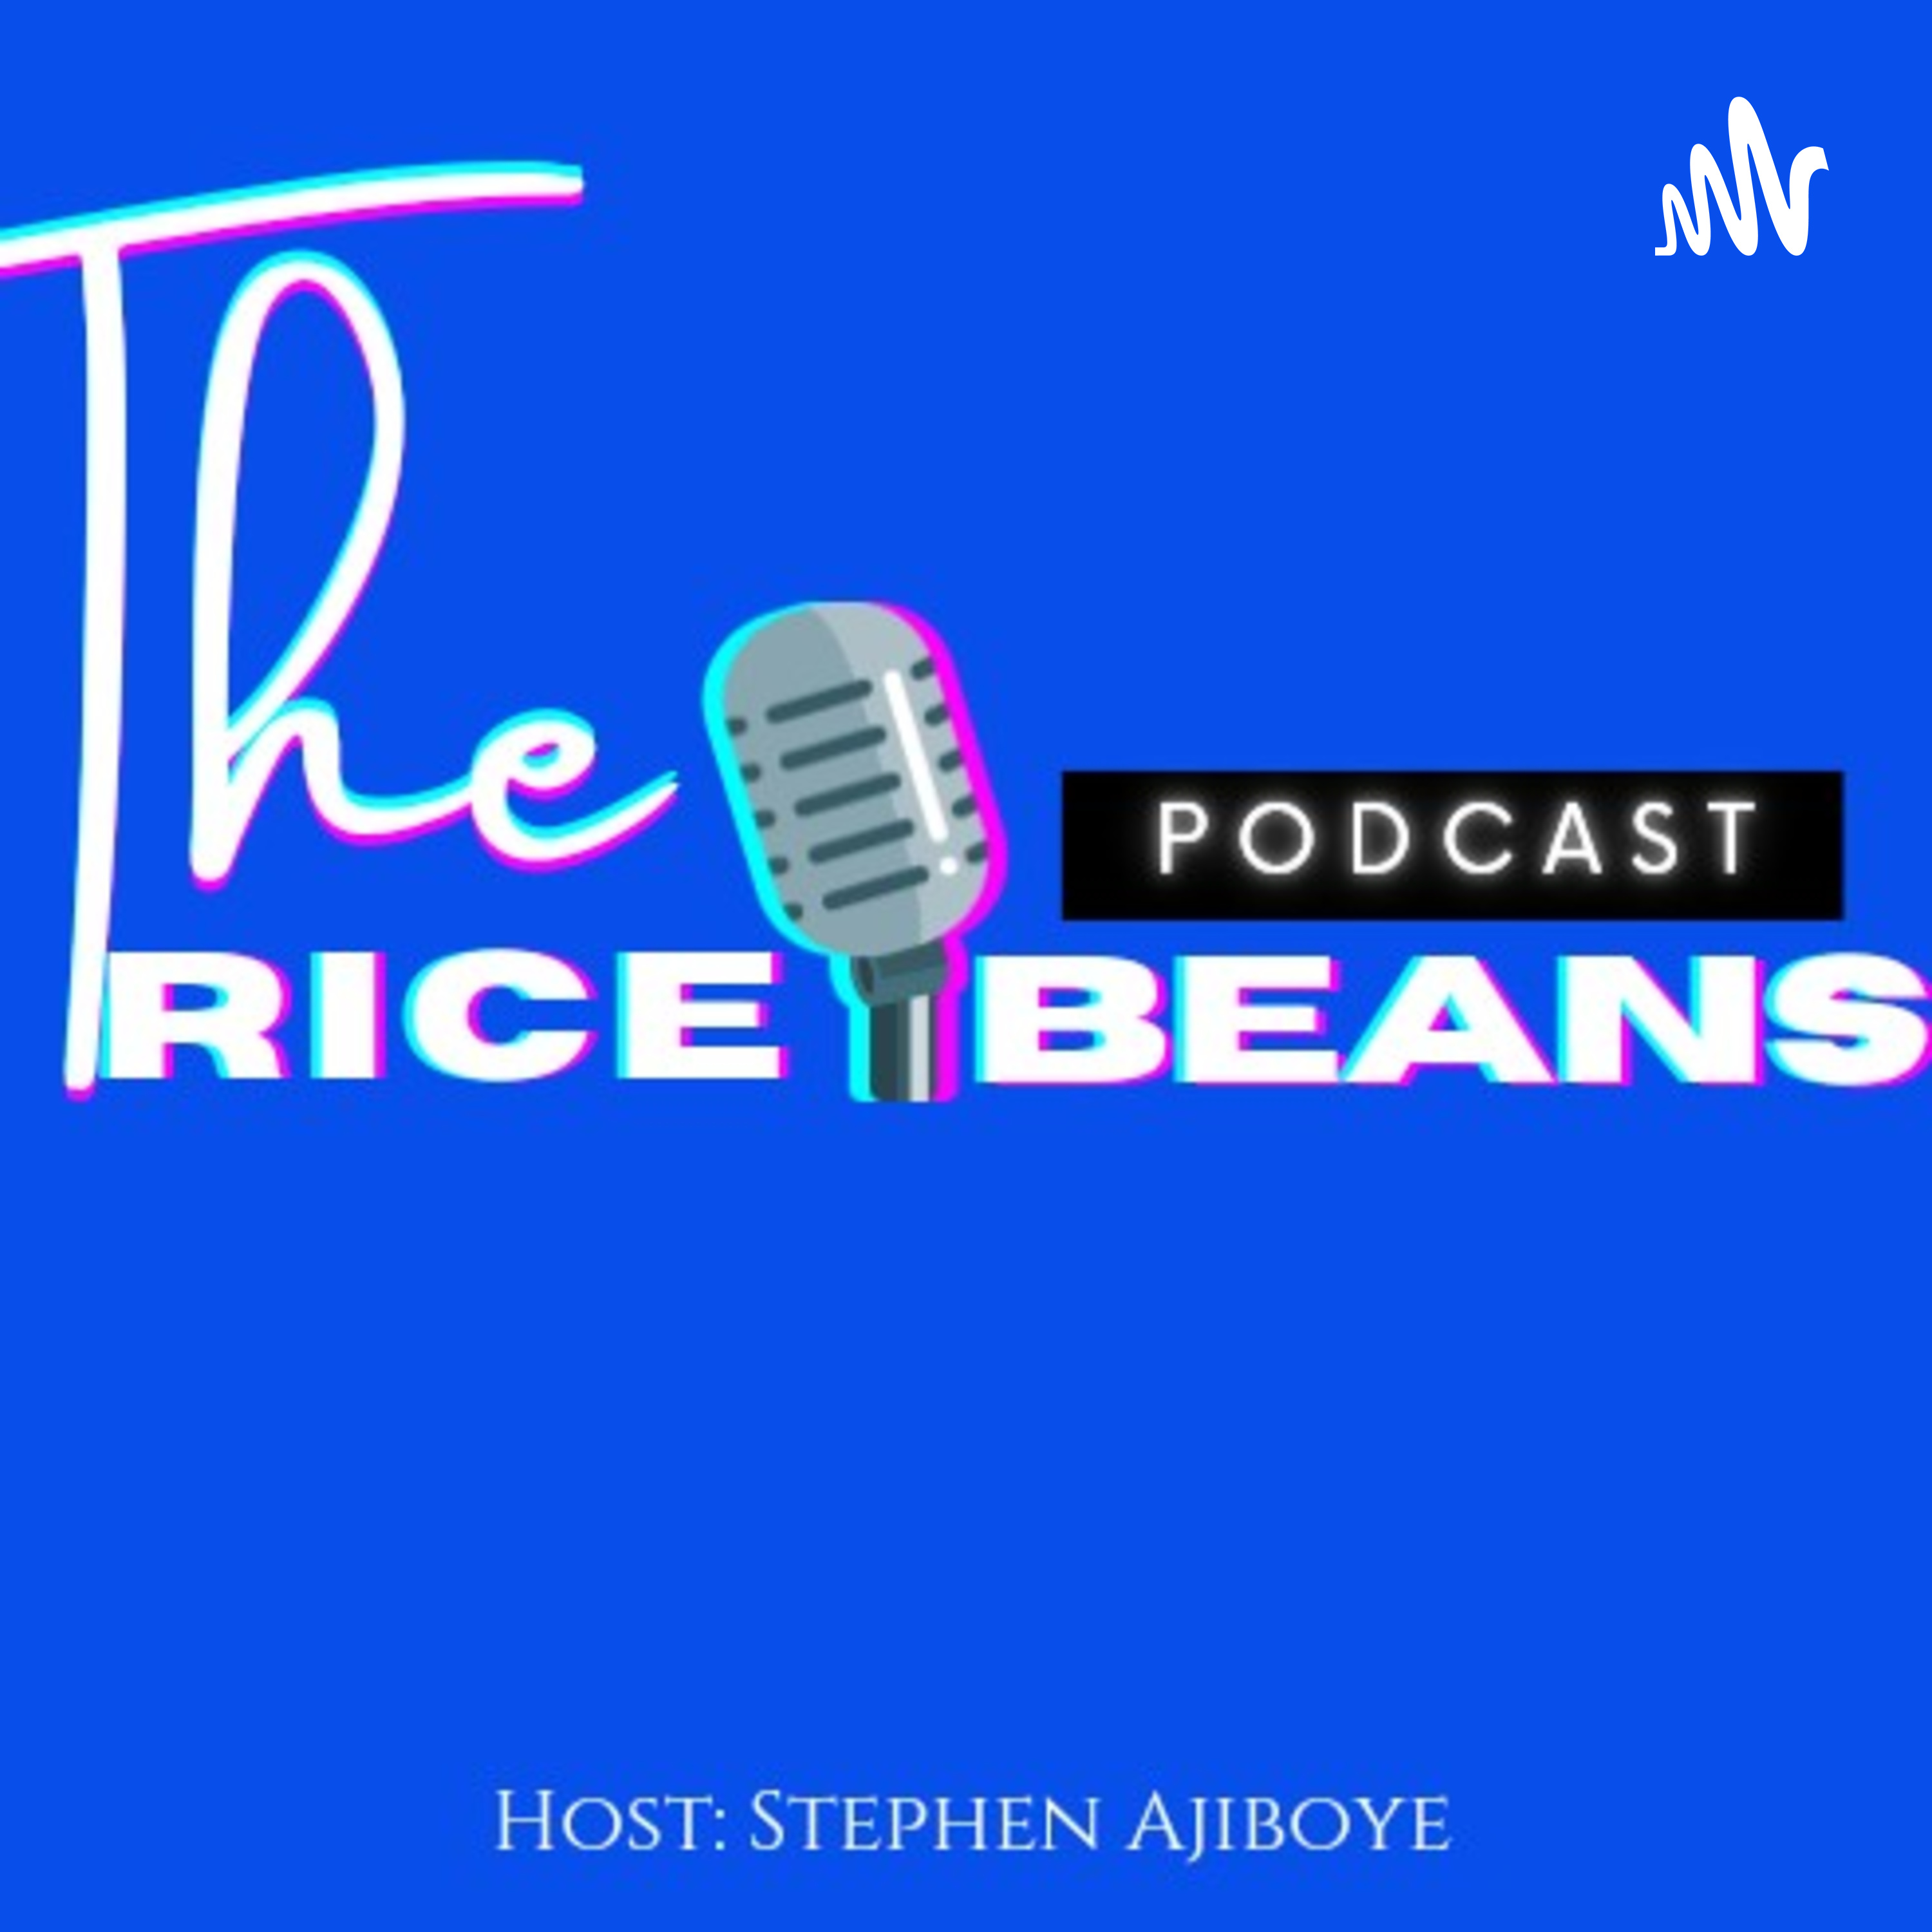 The Rice And Beans Podcast podcast